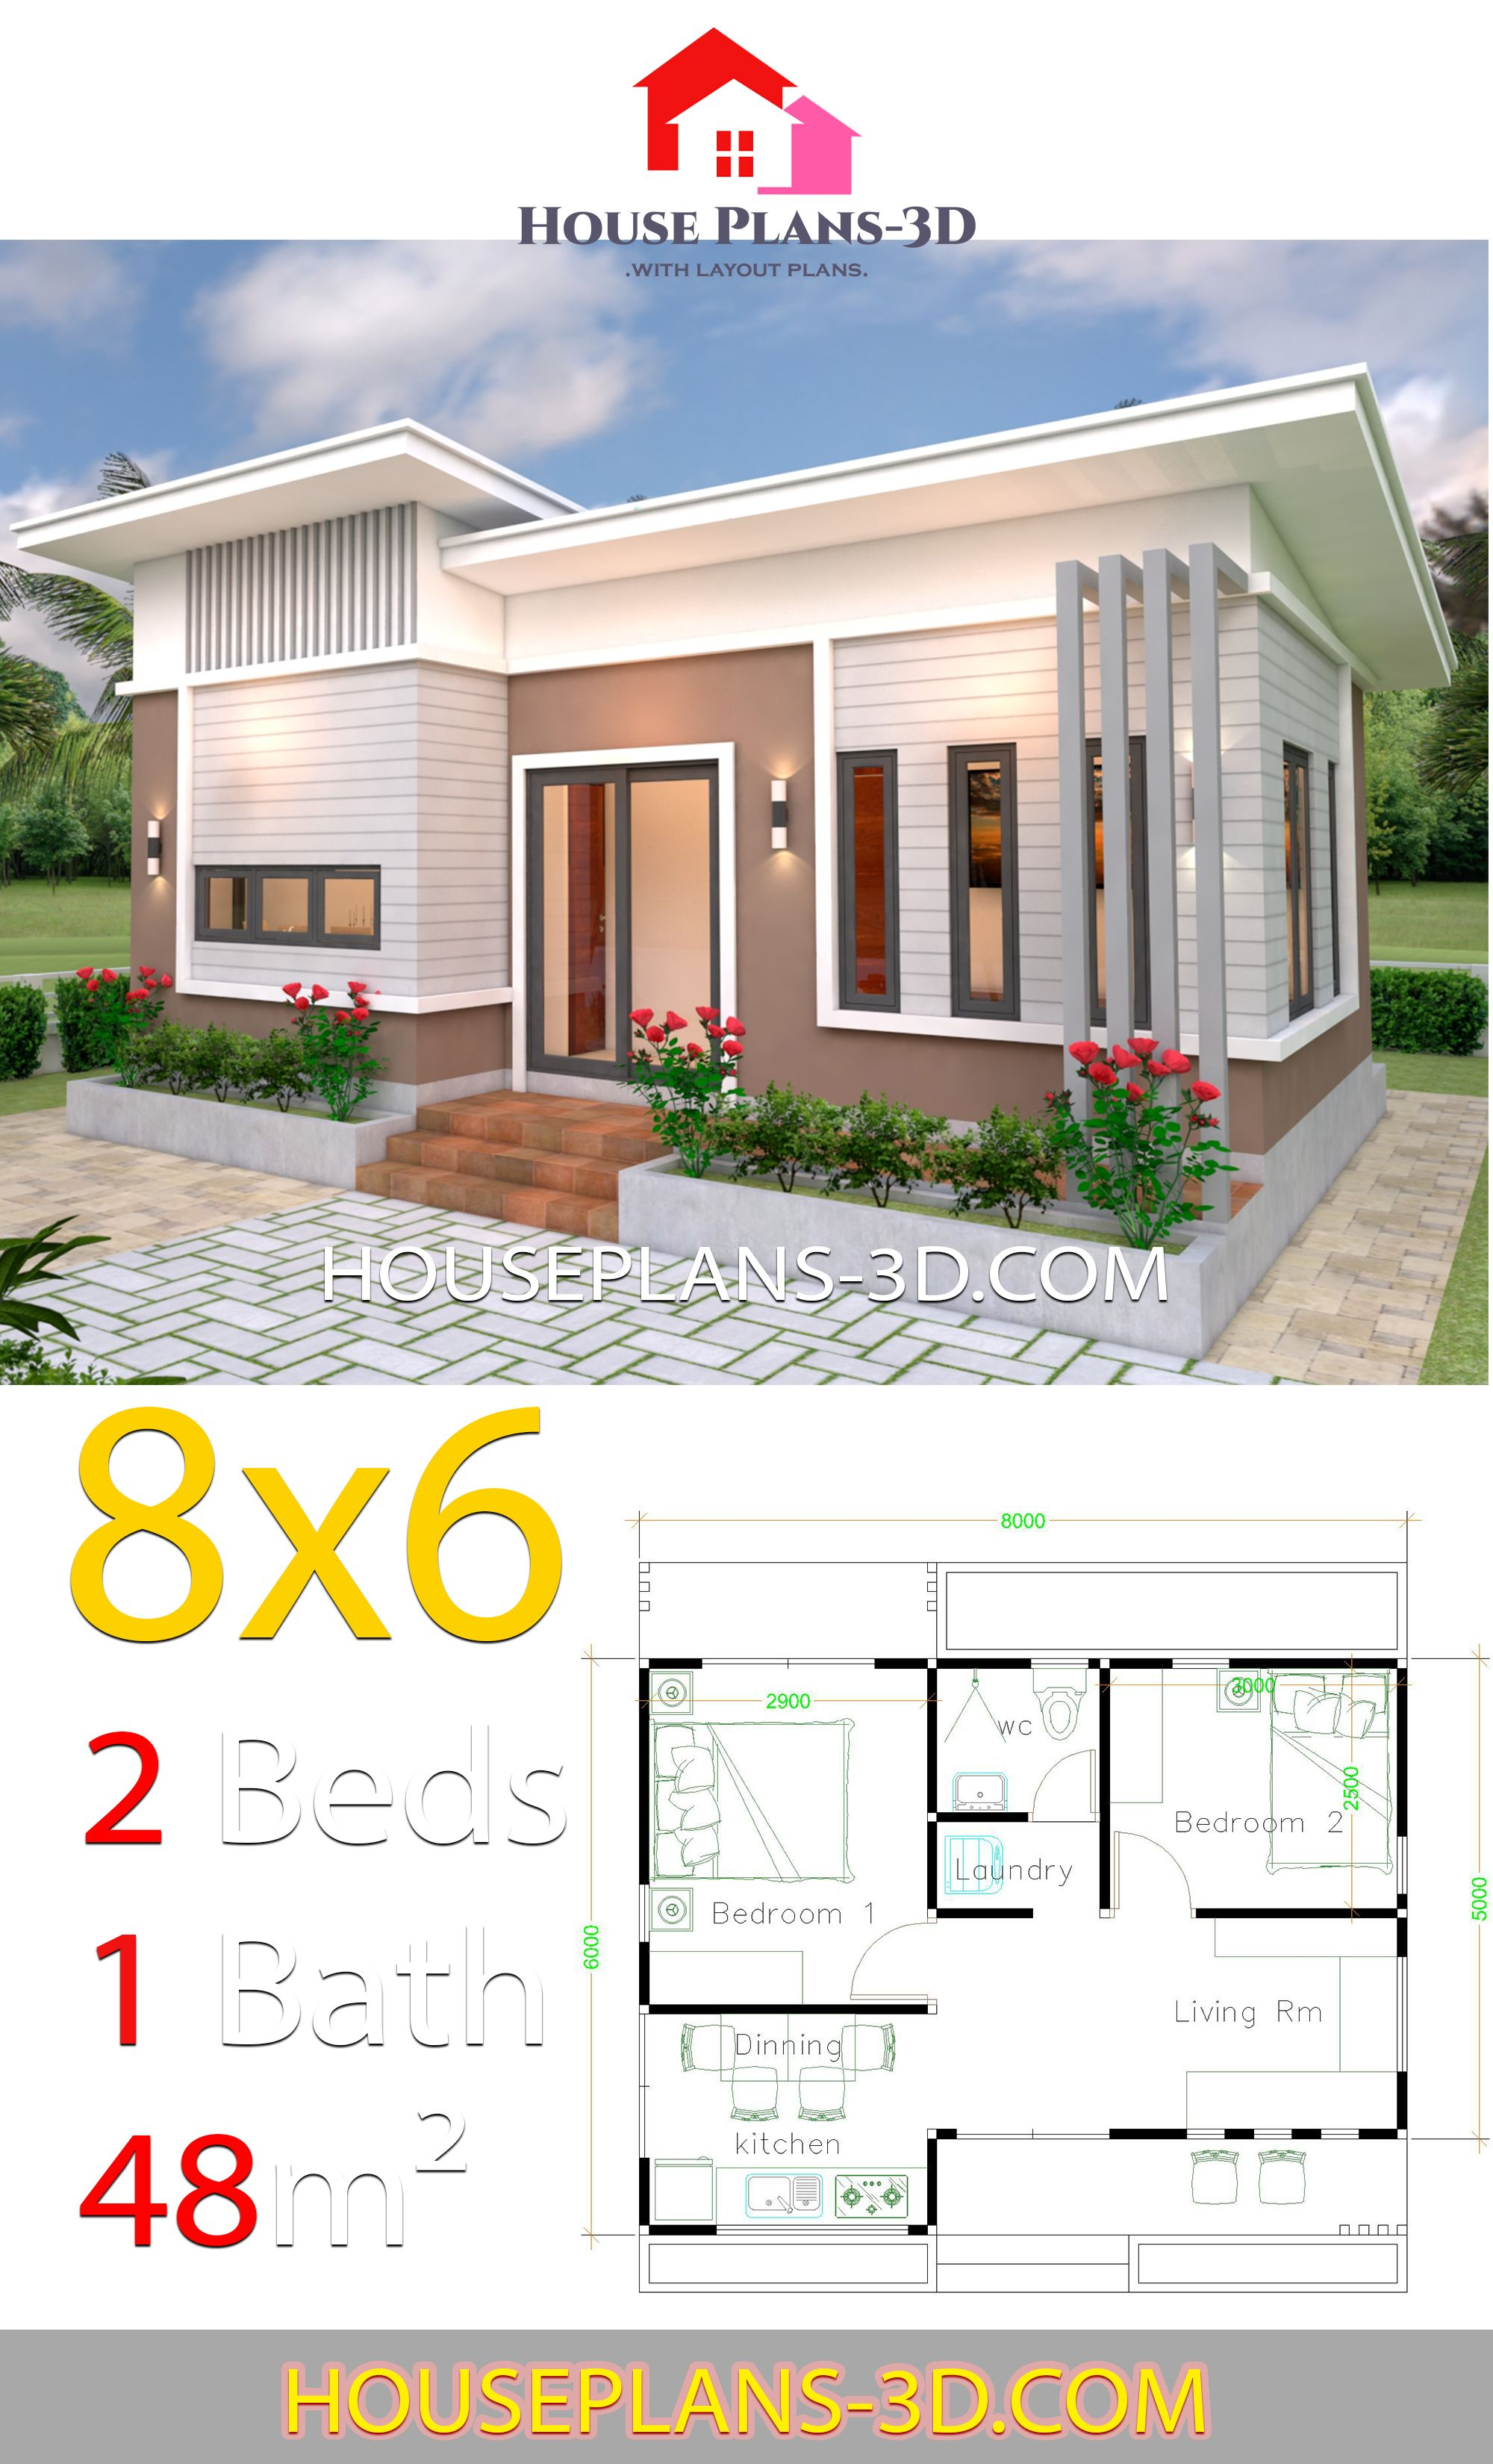 House Plans 8x6 With 2 Bedrooms Slope Roof House Plans 3d In 2020 House Plans Simple House Plans One Bedroom House